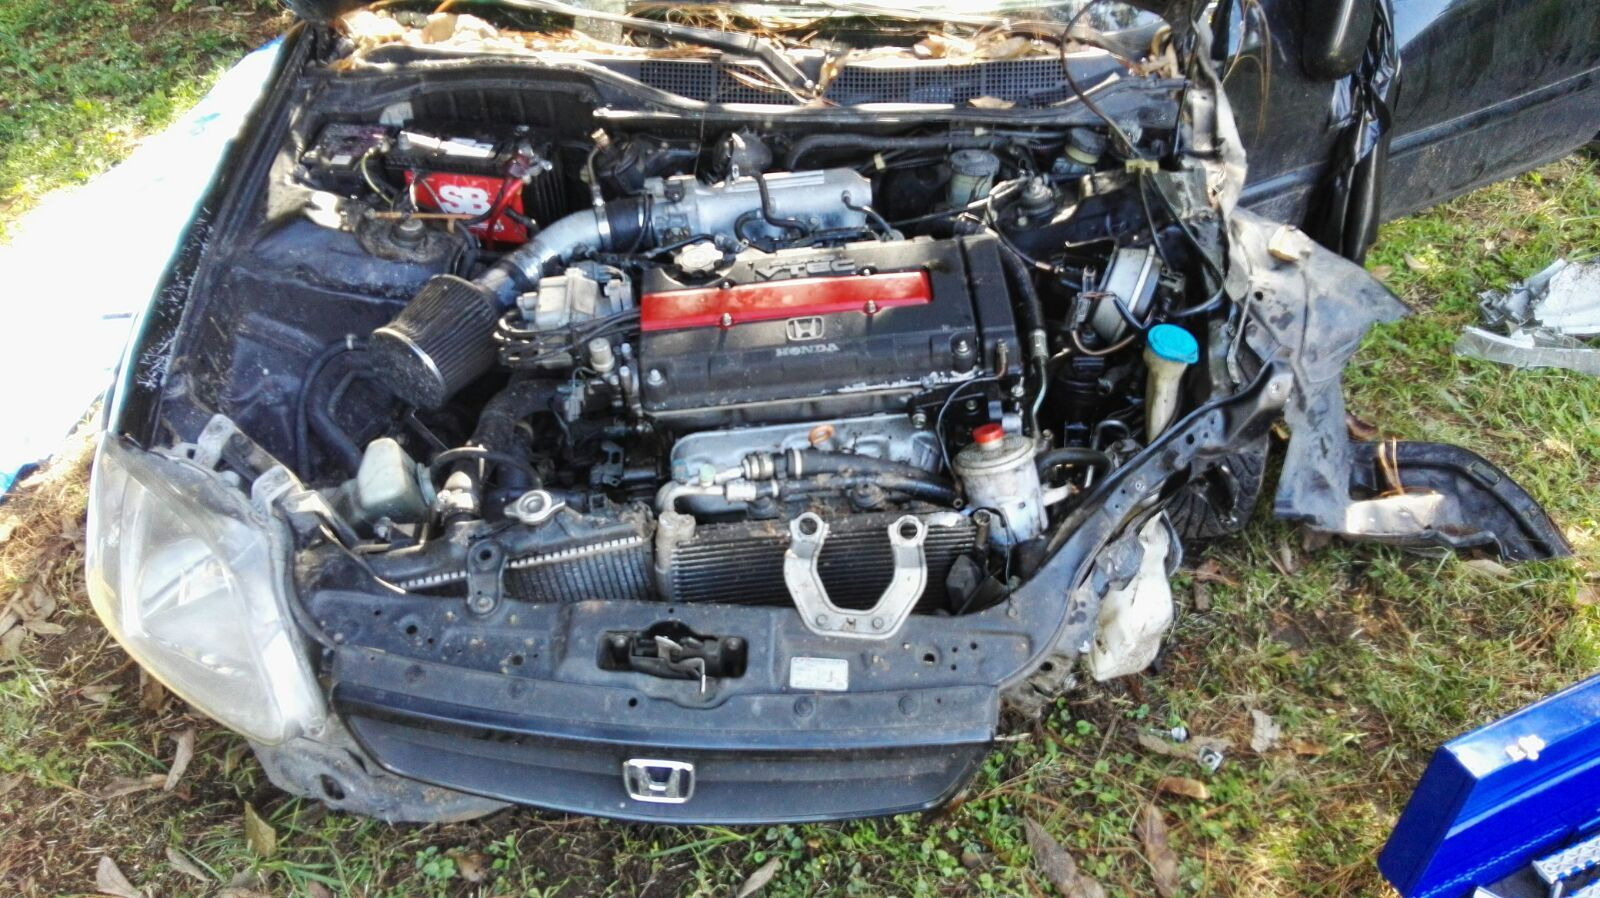 Engine for 95 civic - I Have A Project Civic 95 Hb Engine D15b8 A Can Swap B16a2 Si 2000 I Need Help Conect Ecu P2t In Harness Civic 95 Note I Dont Speak English Sorry